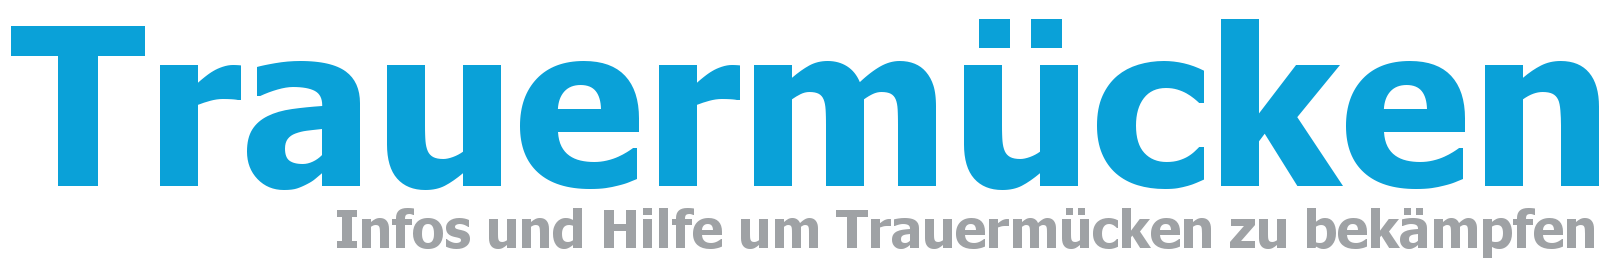 trauermuecken-website-logo-neu